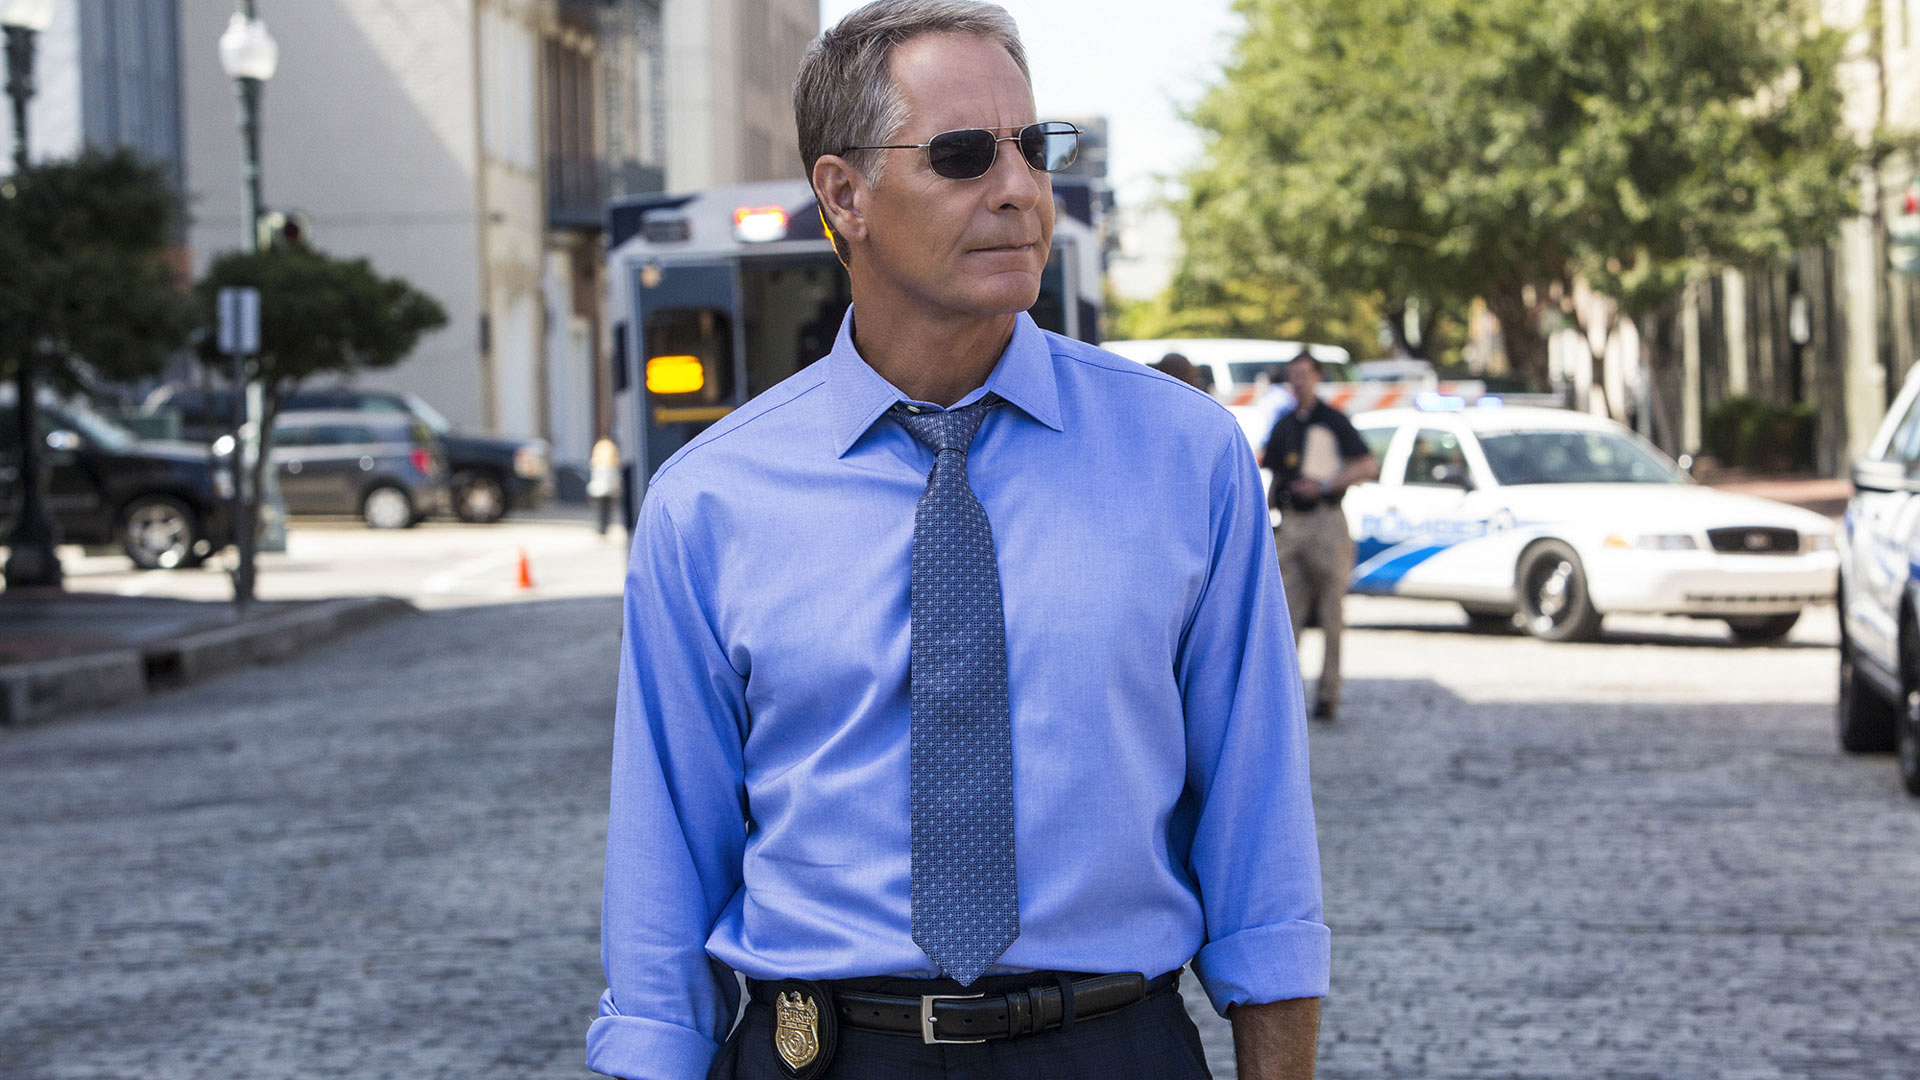 Scott Bakula as Dwayne Pride